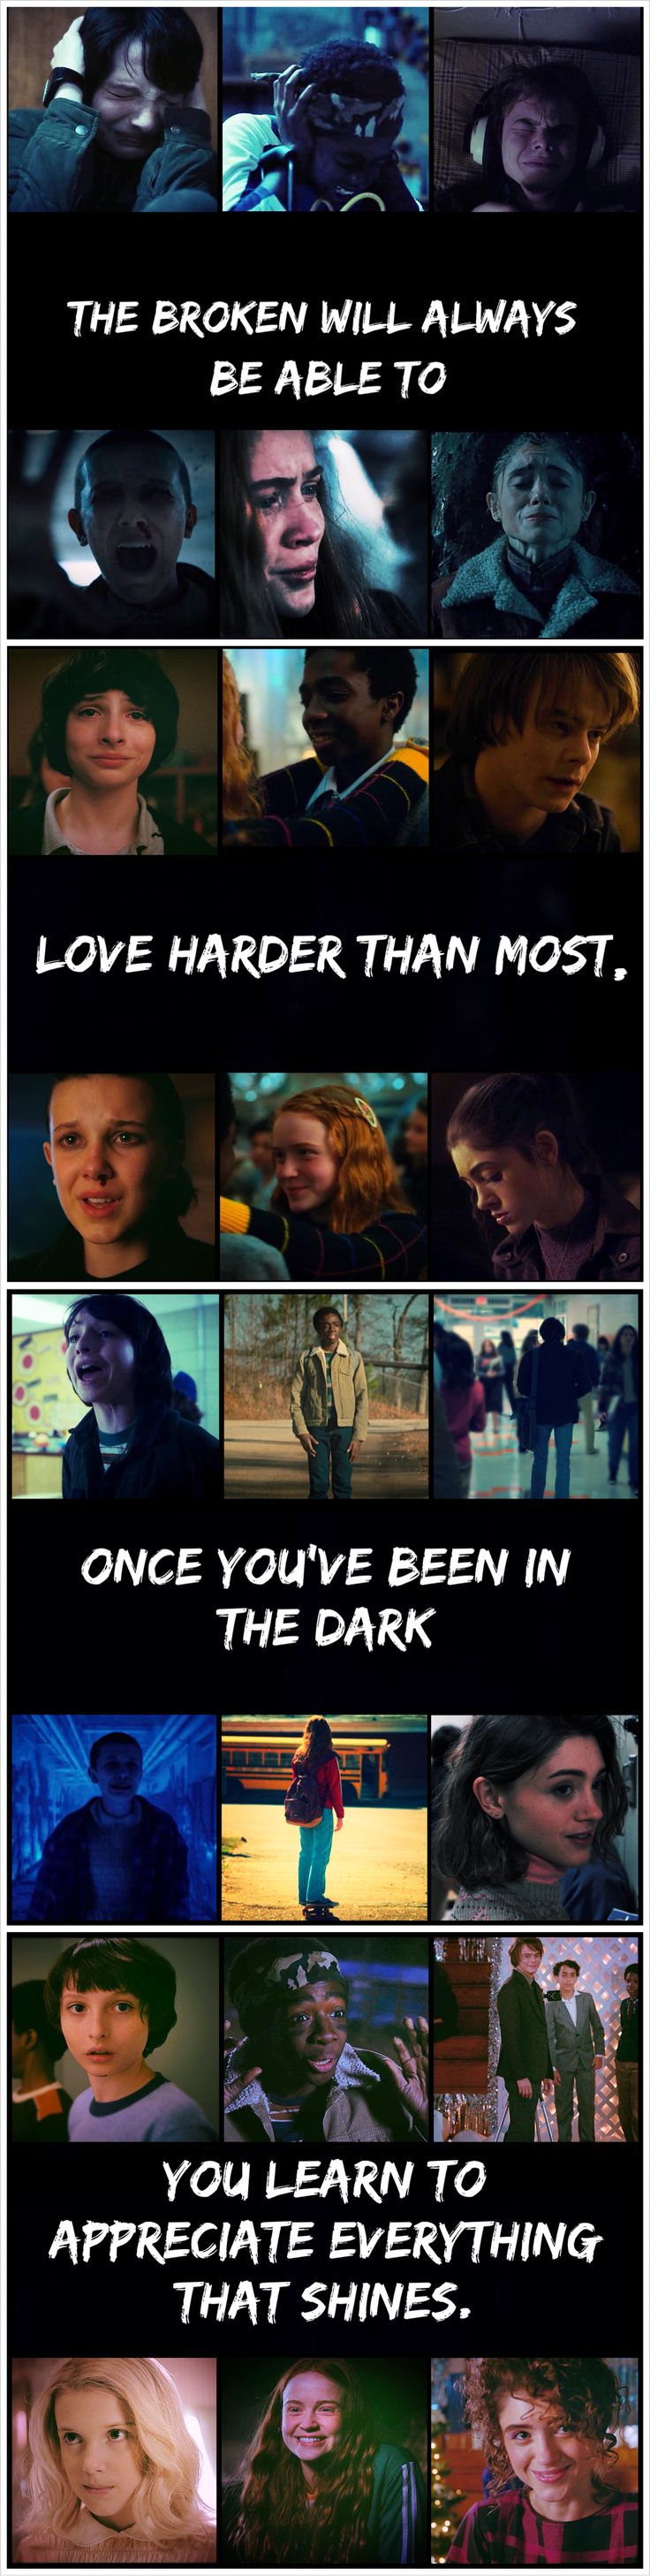 I made this because of my love for stranger things and all of the amazing ships that make the show that much more magical for me.